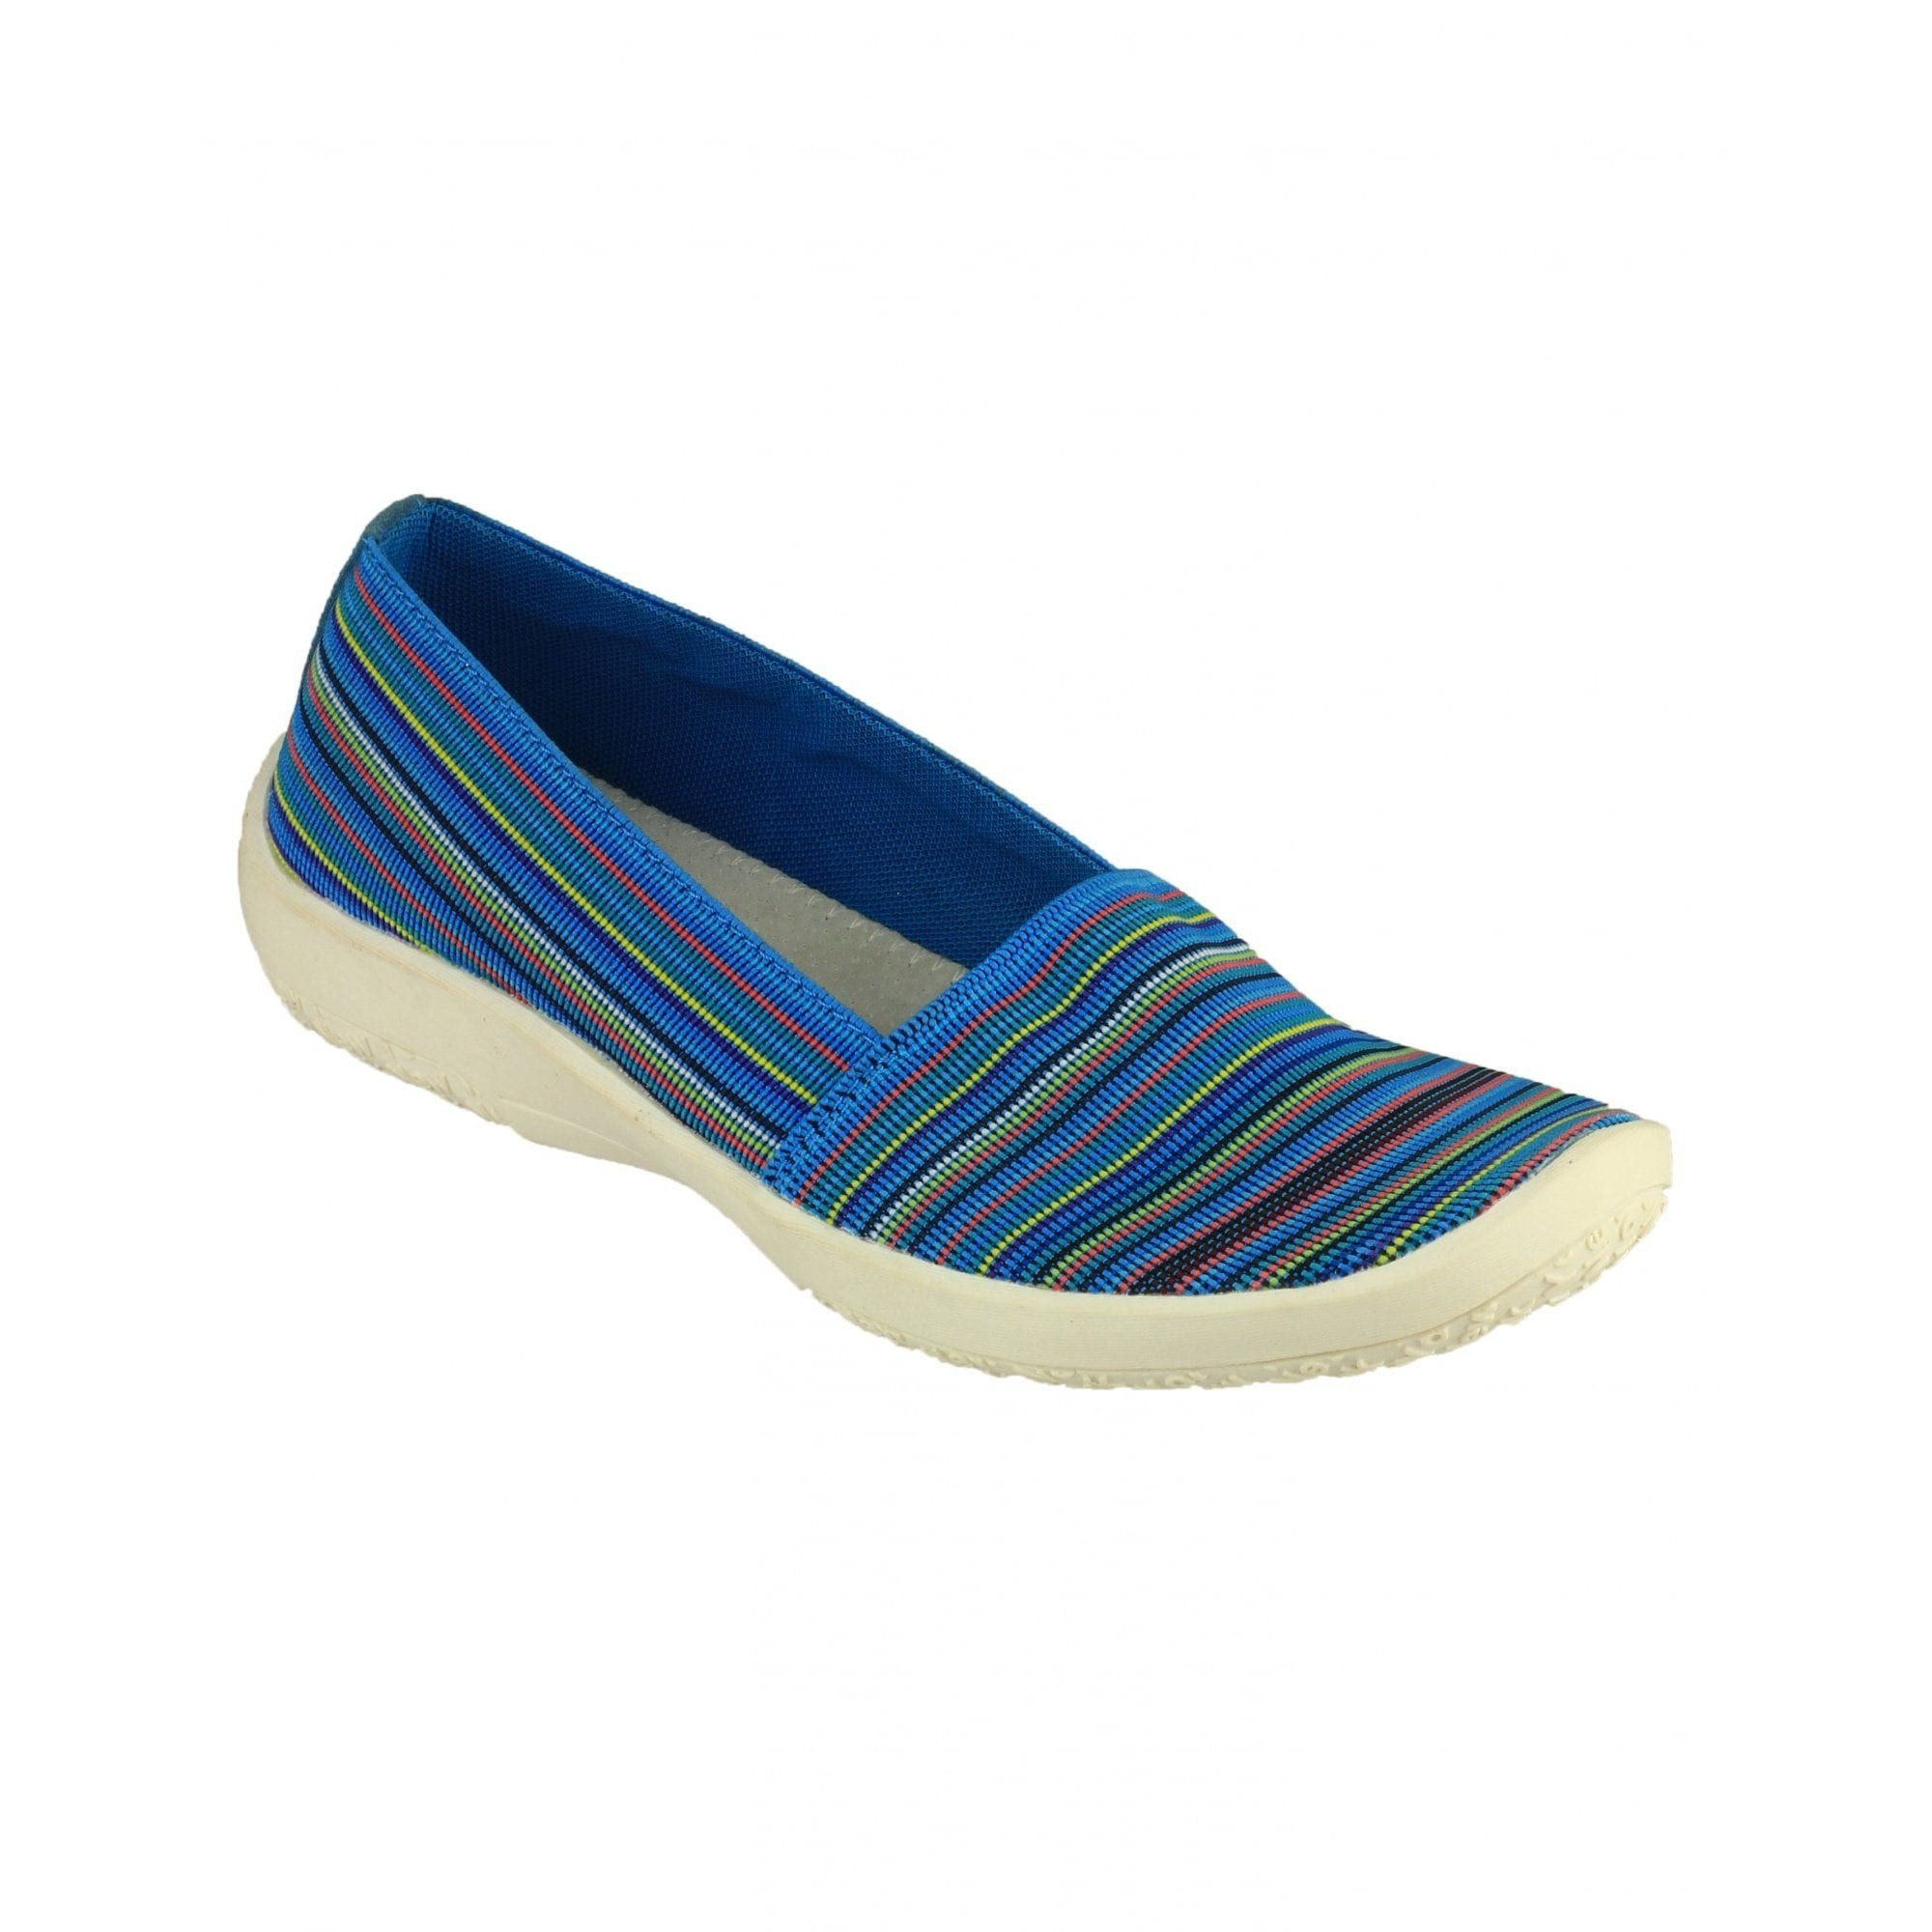 Image of Cotswold Espadrille »Damen Sommer Schuhe Broadwell«